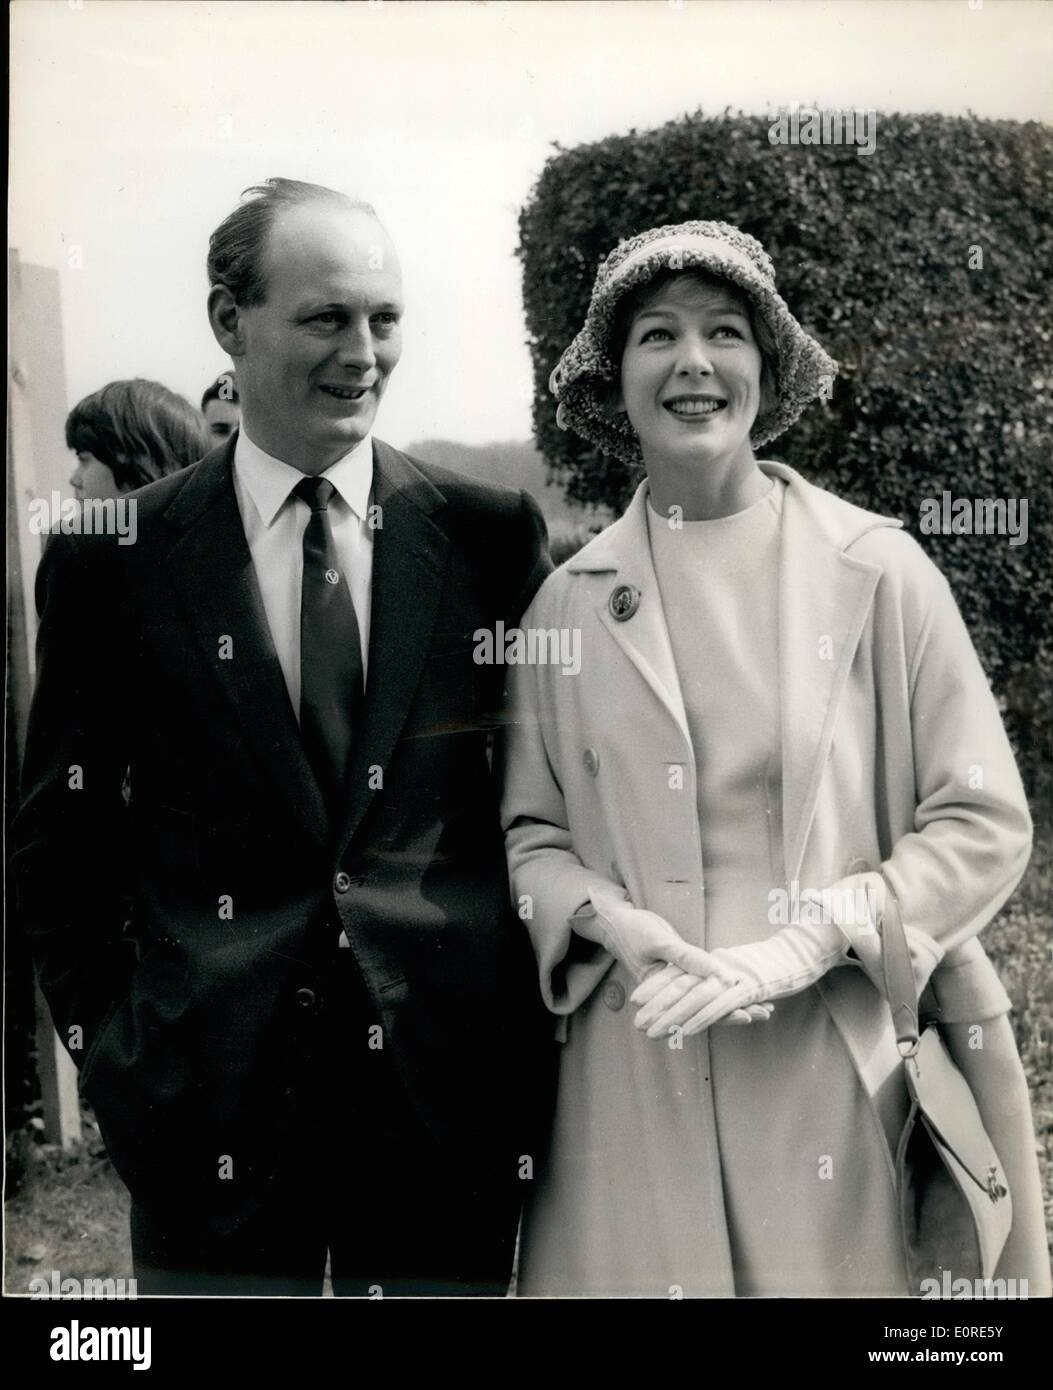 Apr. 04, 1959 - Lord Montagu And His Bride-To-Be: Lord Montagu of Beaulieu yesterday opened his exhibition of vintage cars - at - Stock Image